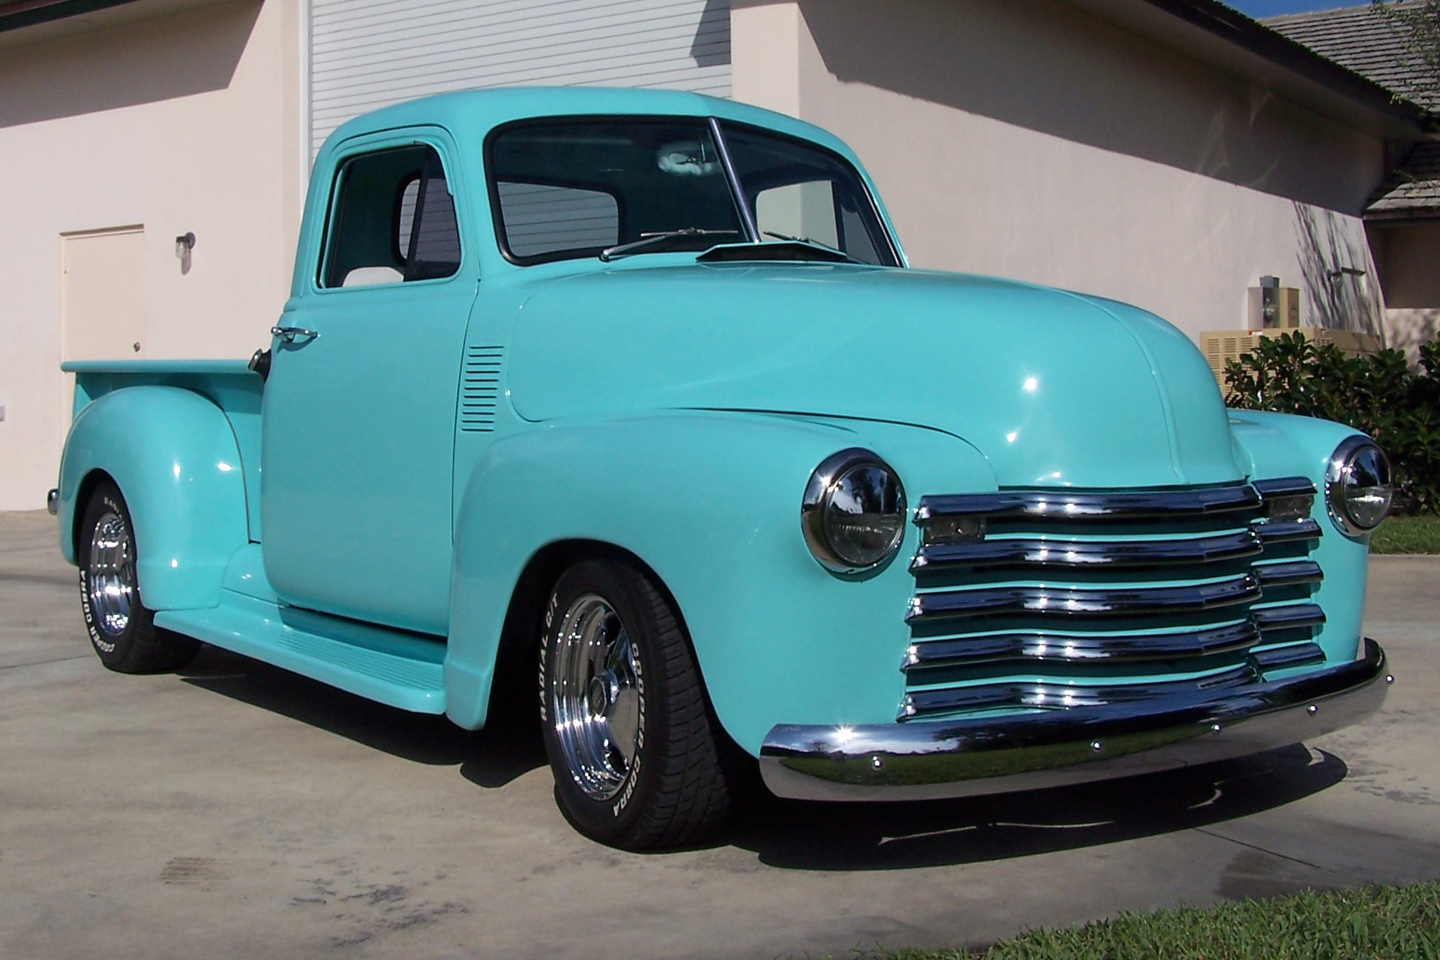 A Ed D E C D Ed Ab Black Doors Black Interiors moreover Chevy Cab Over Coe Five Window Snubnose Truck Kustom Rat Rod Pickup Chevy in addition Gmc Other likewise Chevrolet Pickup together with B. on 1947 chevy pickup truck models